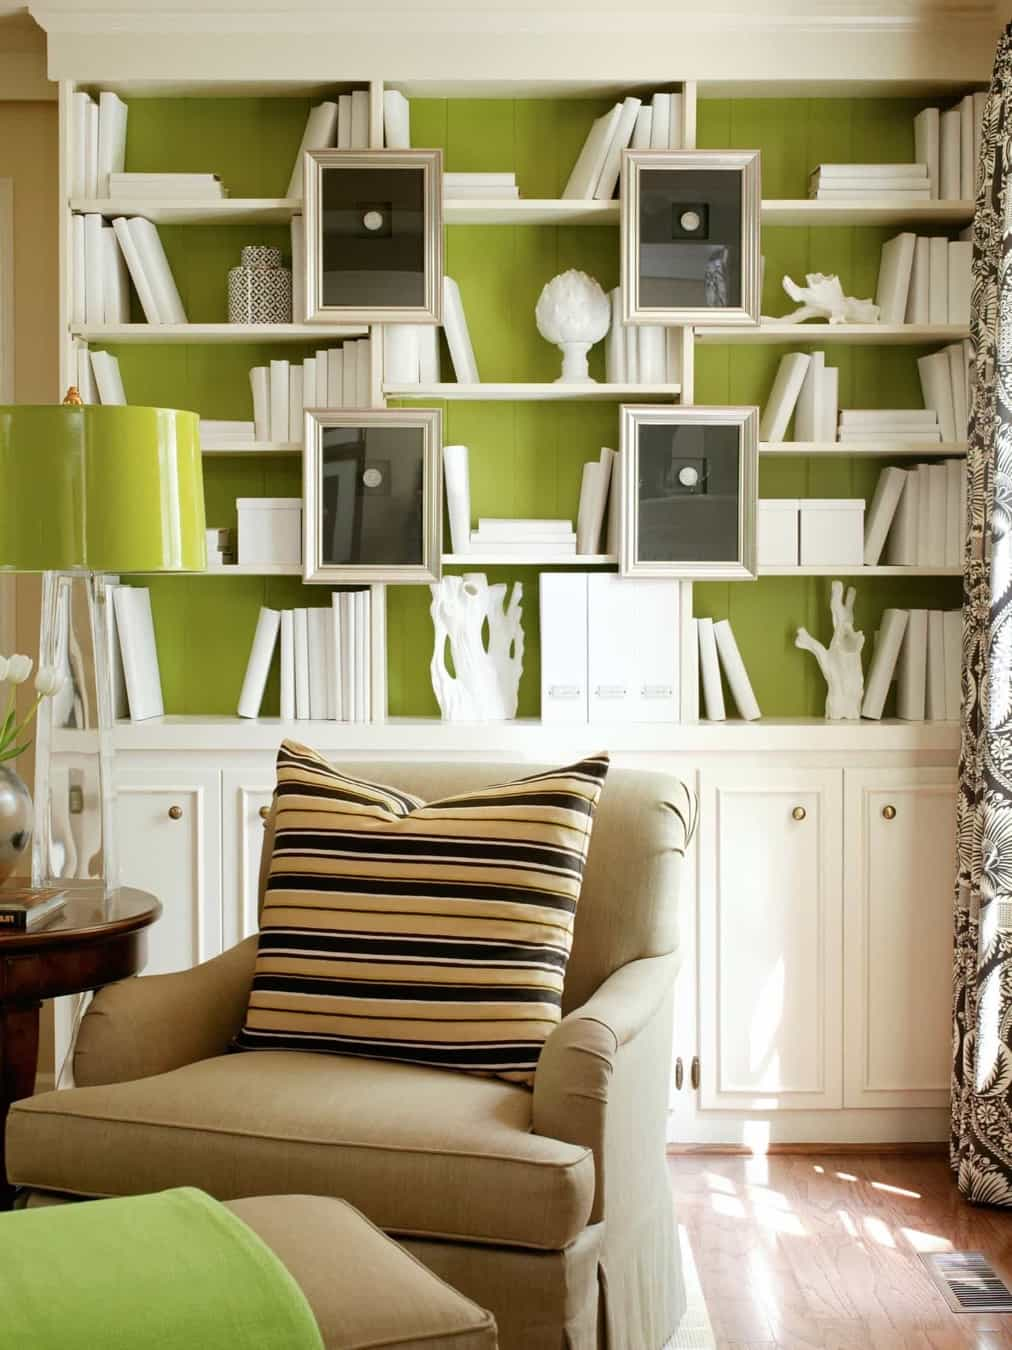 Featured Image of White Bookcase On Bold Lime Green Wall